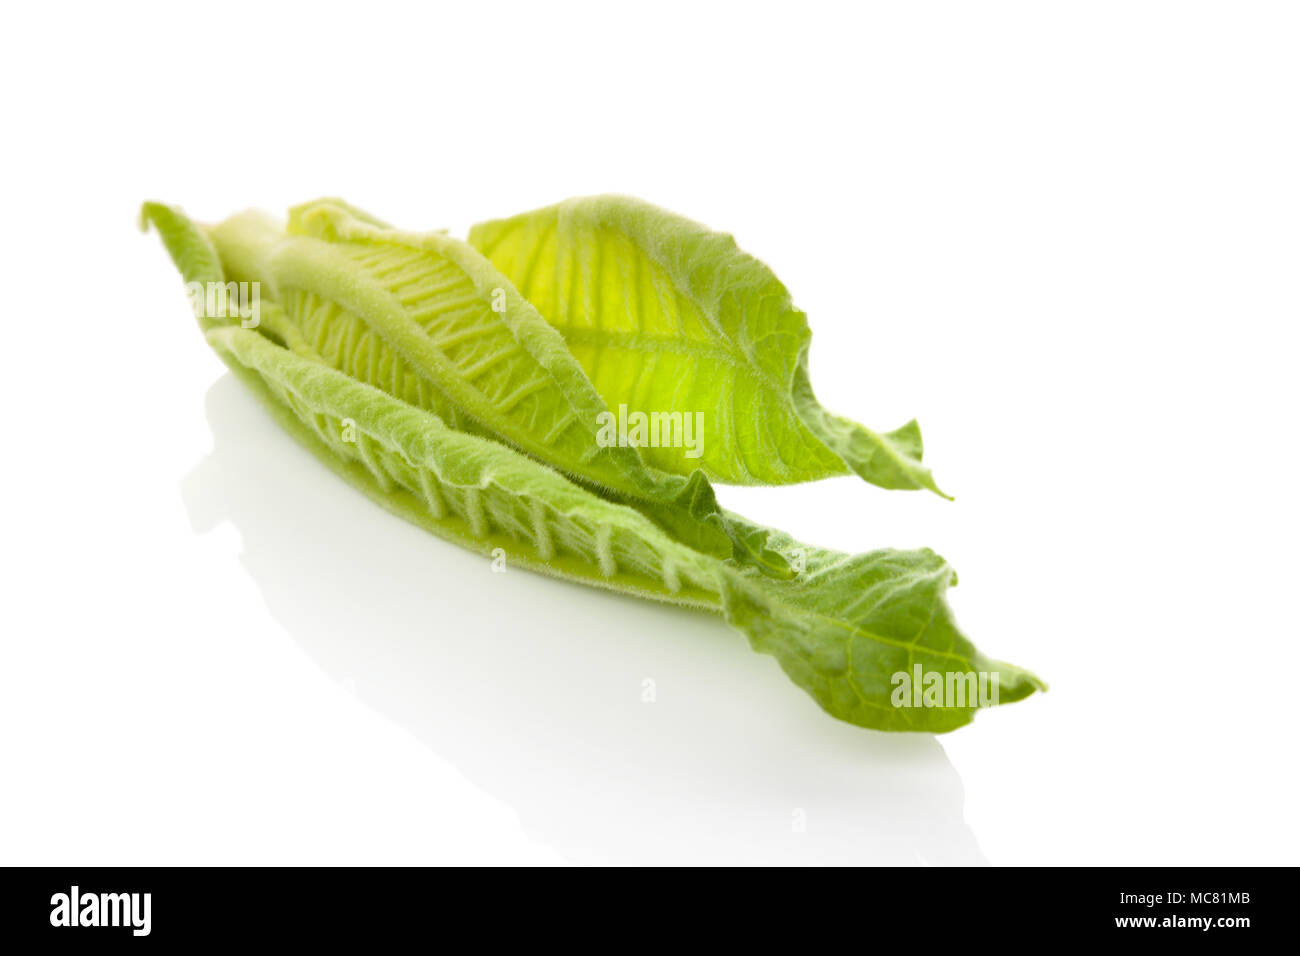 Fresh green tobacco leaves isolated on white background. - Stock Image